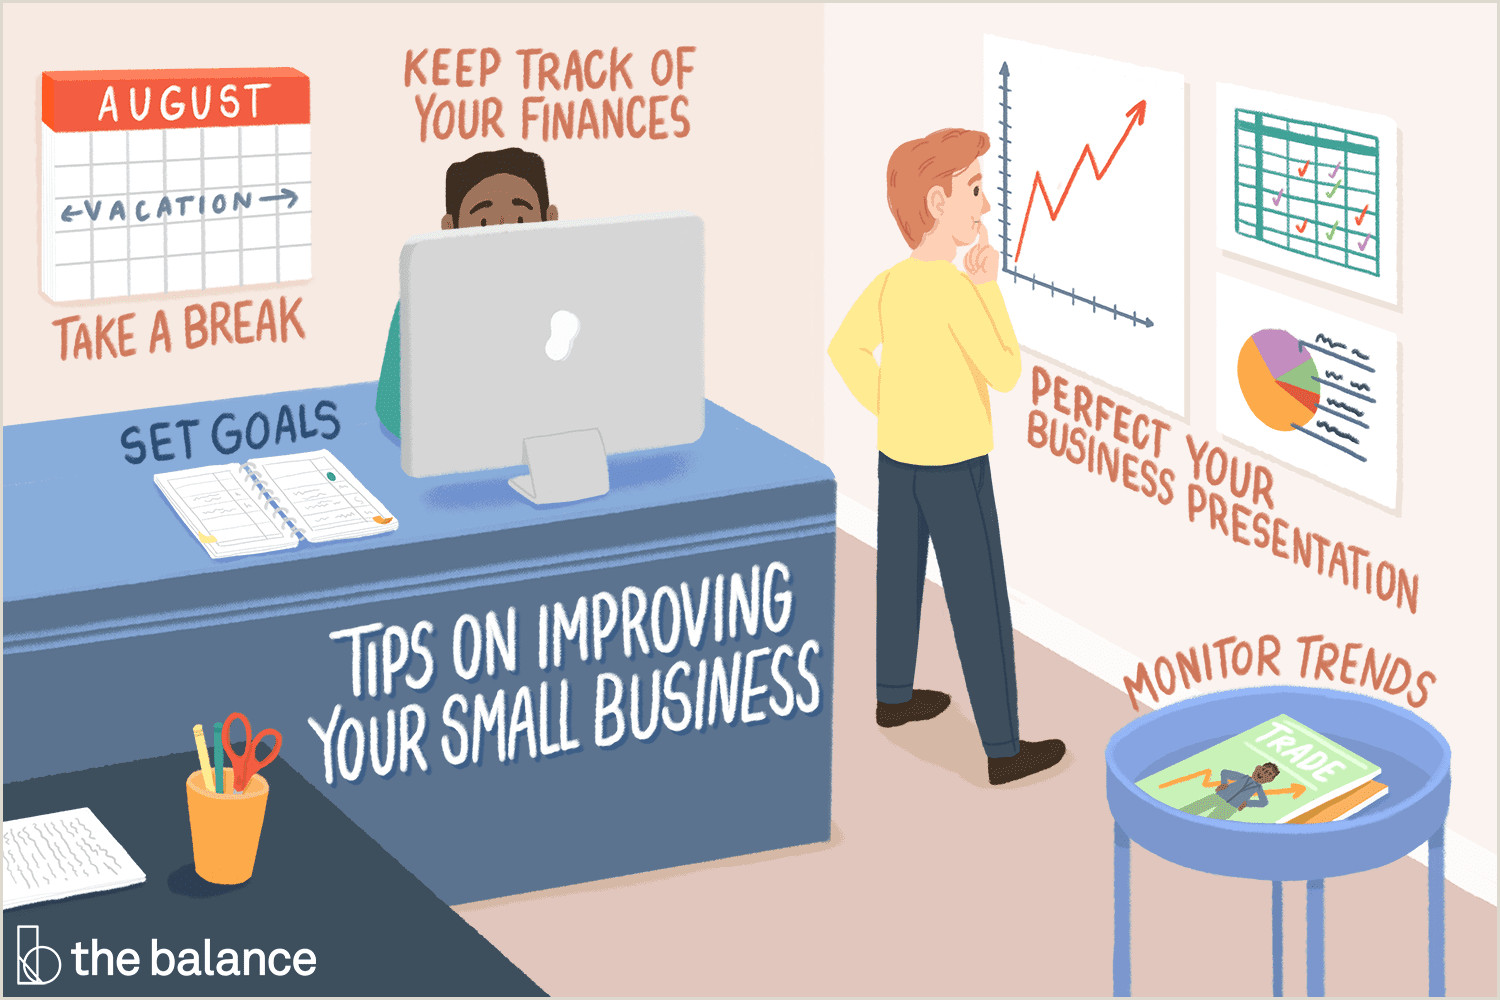 Writing On Business Cards 10 Straightforward Ways To Improve Your Small Business